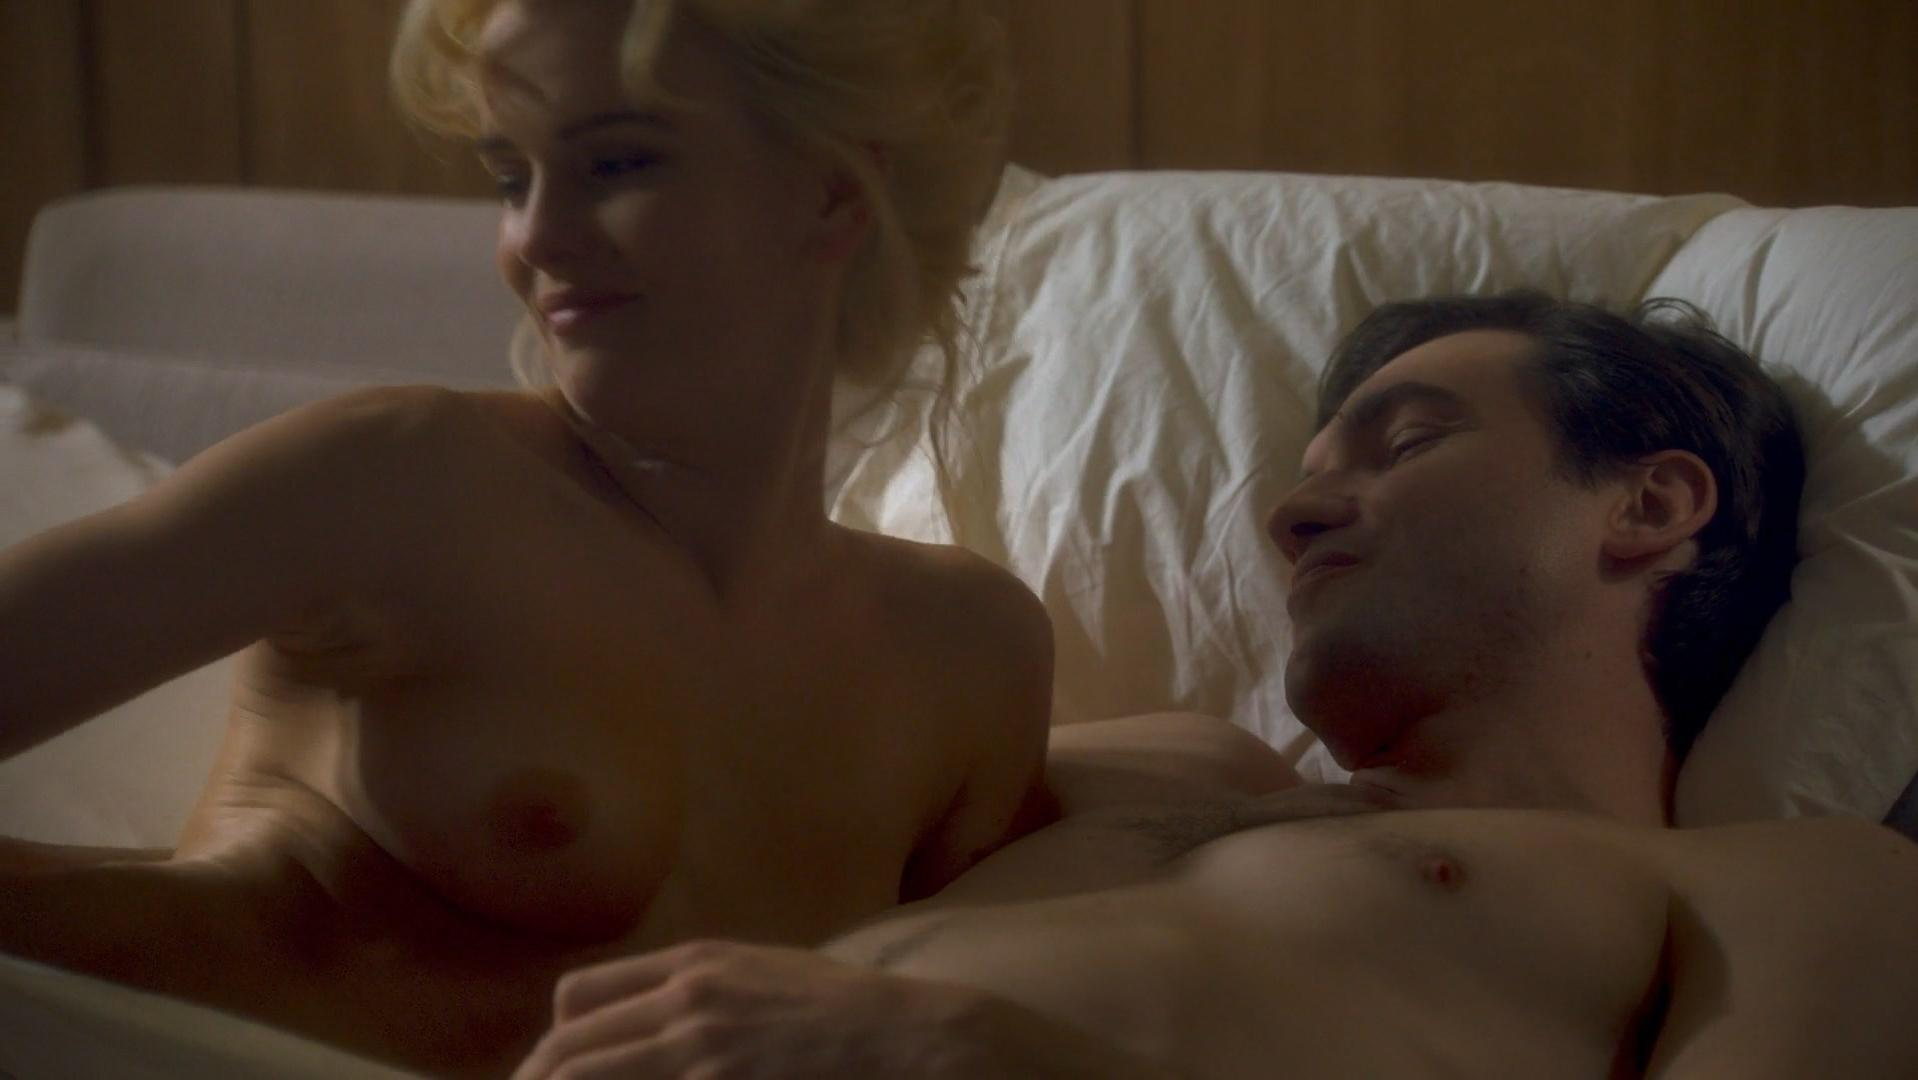 Jade Albany nude - American Playboy The Hugh Hefner Story s01e02 (2017)